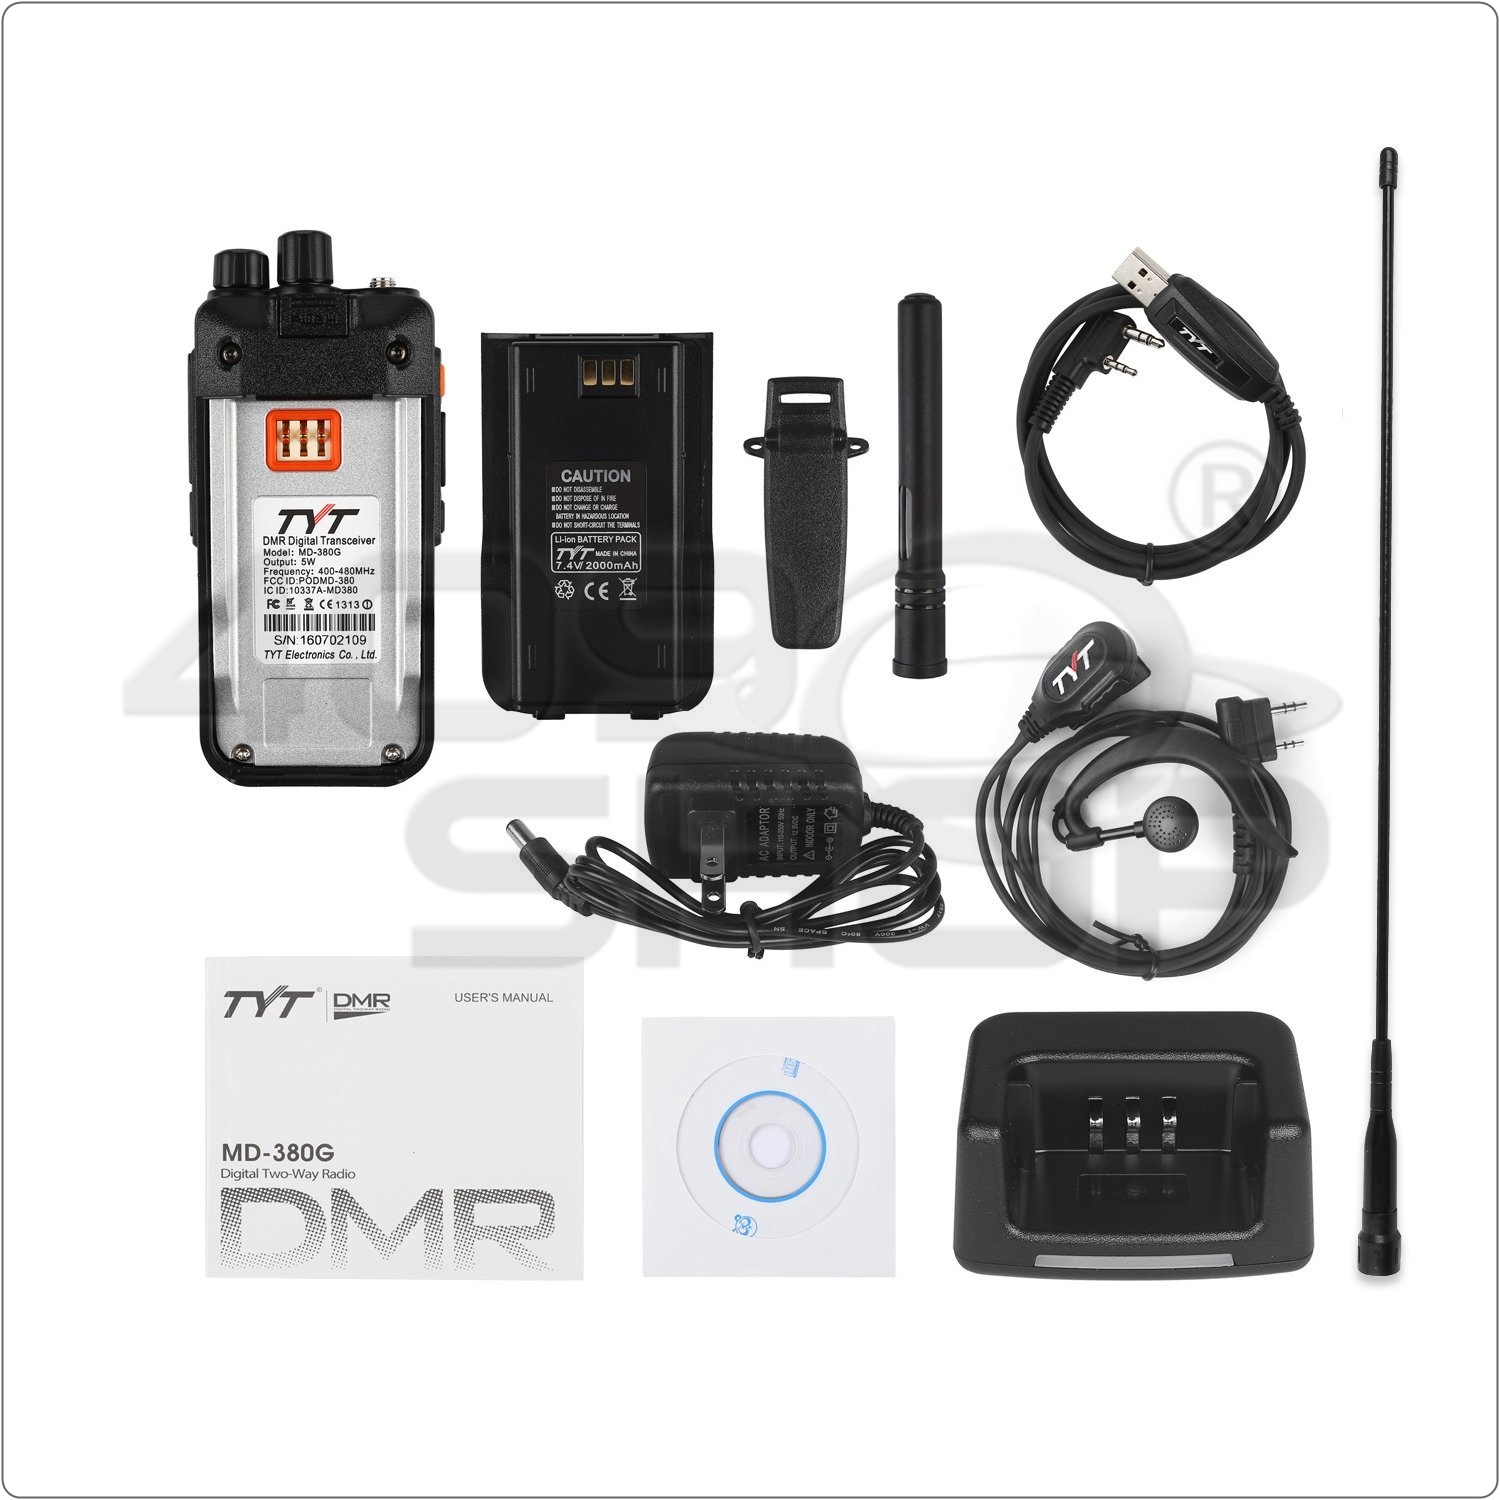 TYT MD-380G GPS 400-480MHz DMR Digital Walkie Talkie with GPS +USB Cable + Earp